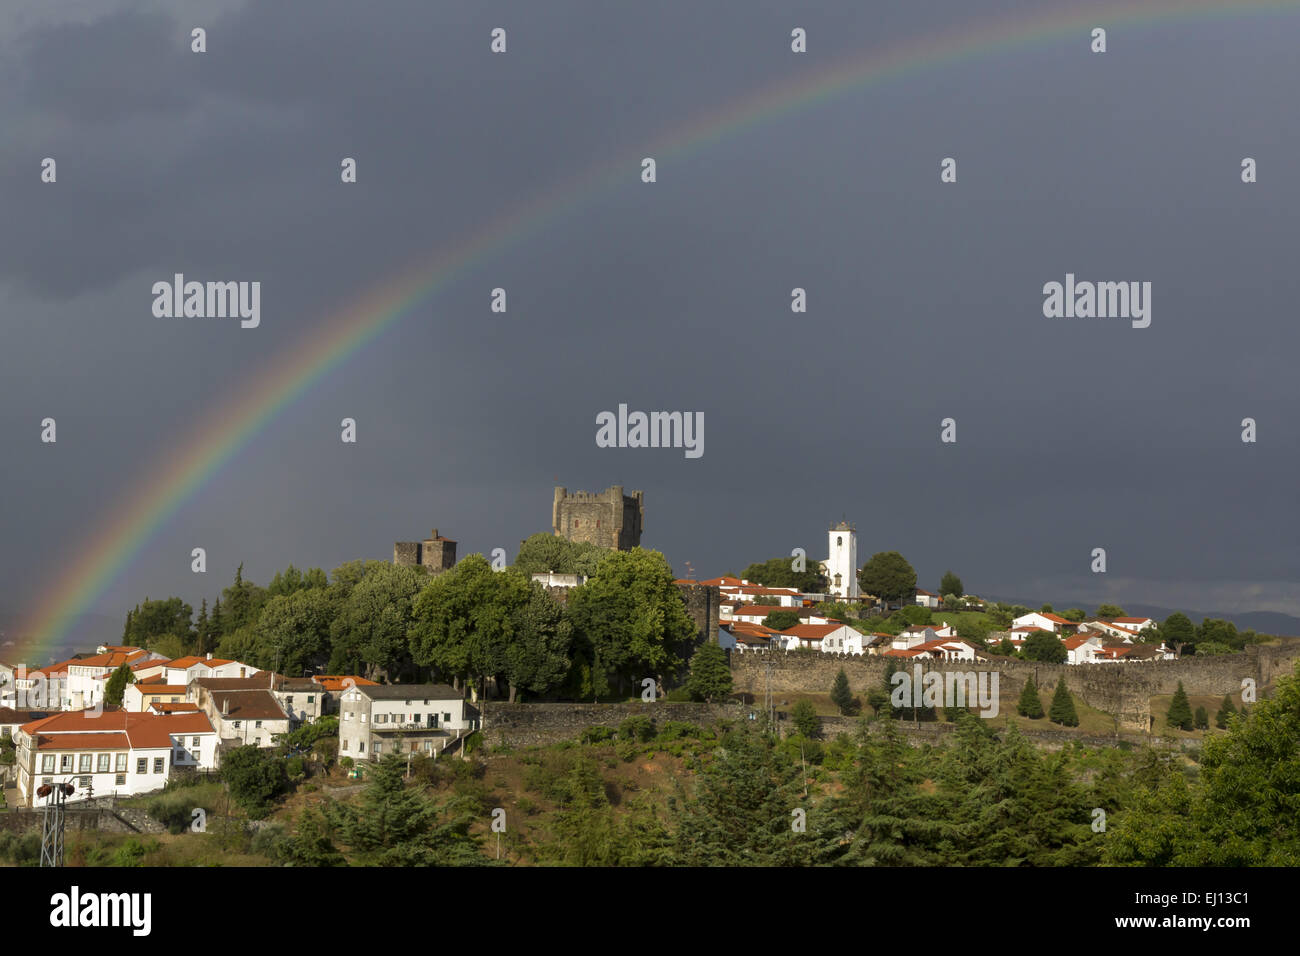 Dramatic view of the ancient walled town of Braganca with dark clouds and rainbow Portugal - Stock Image